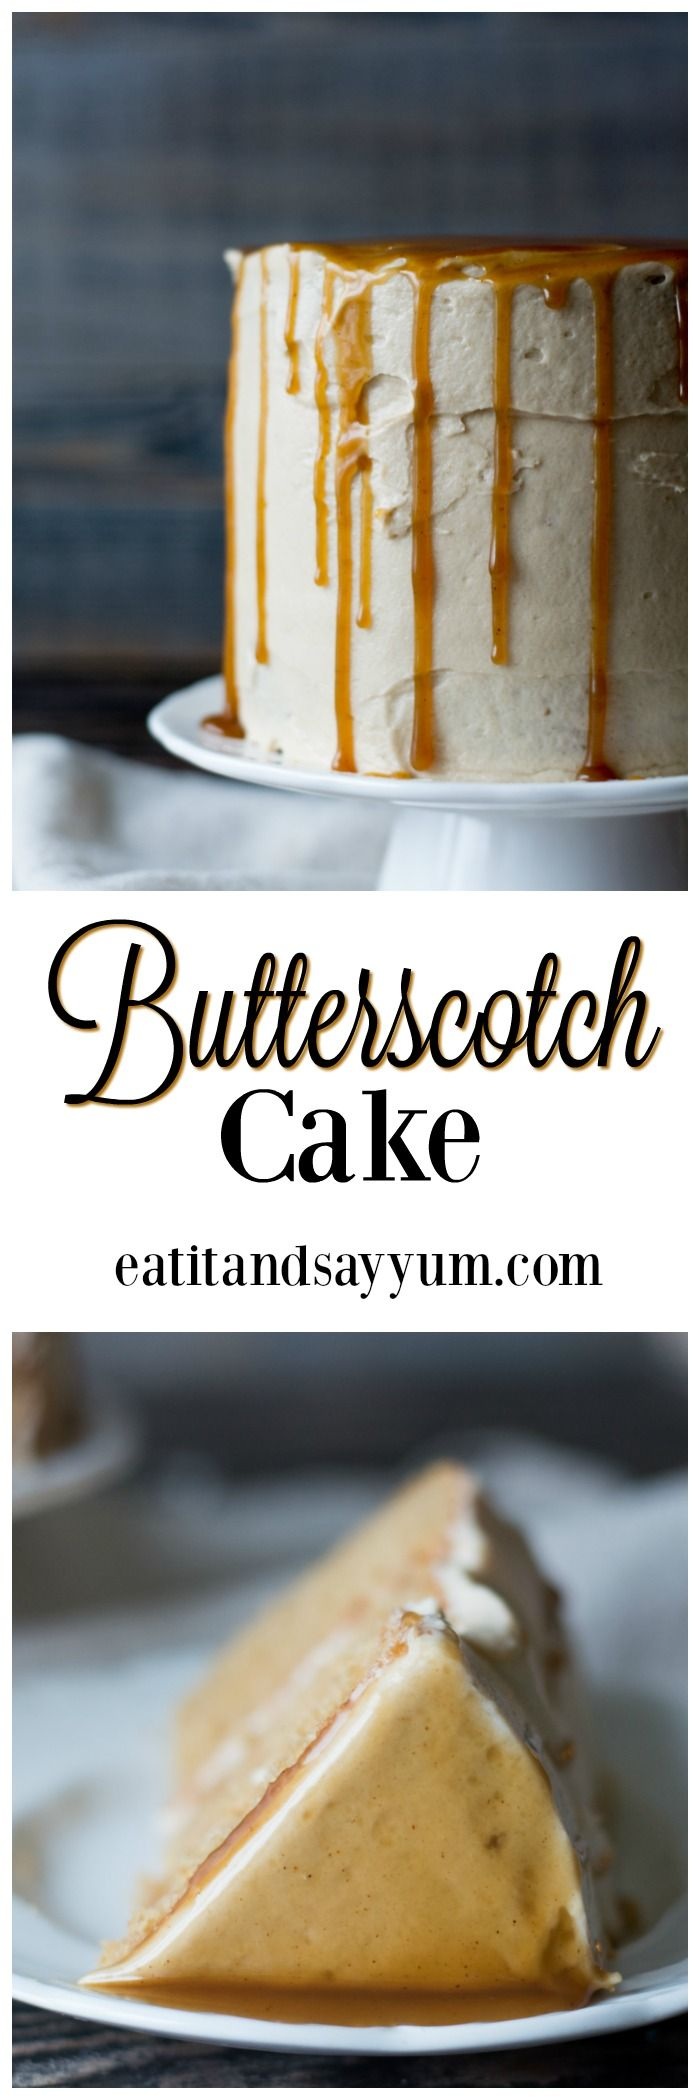 Butterscotch cake with a browned butter frosting and a spiced butterscotch sauce- delicious cake for dessert! Harry Potter Butterbeer style.